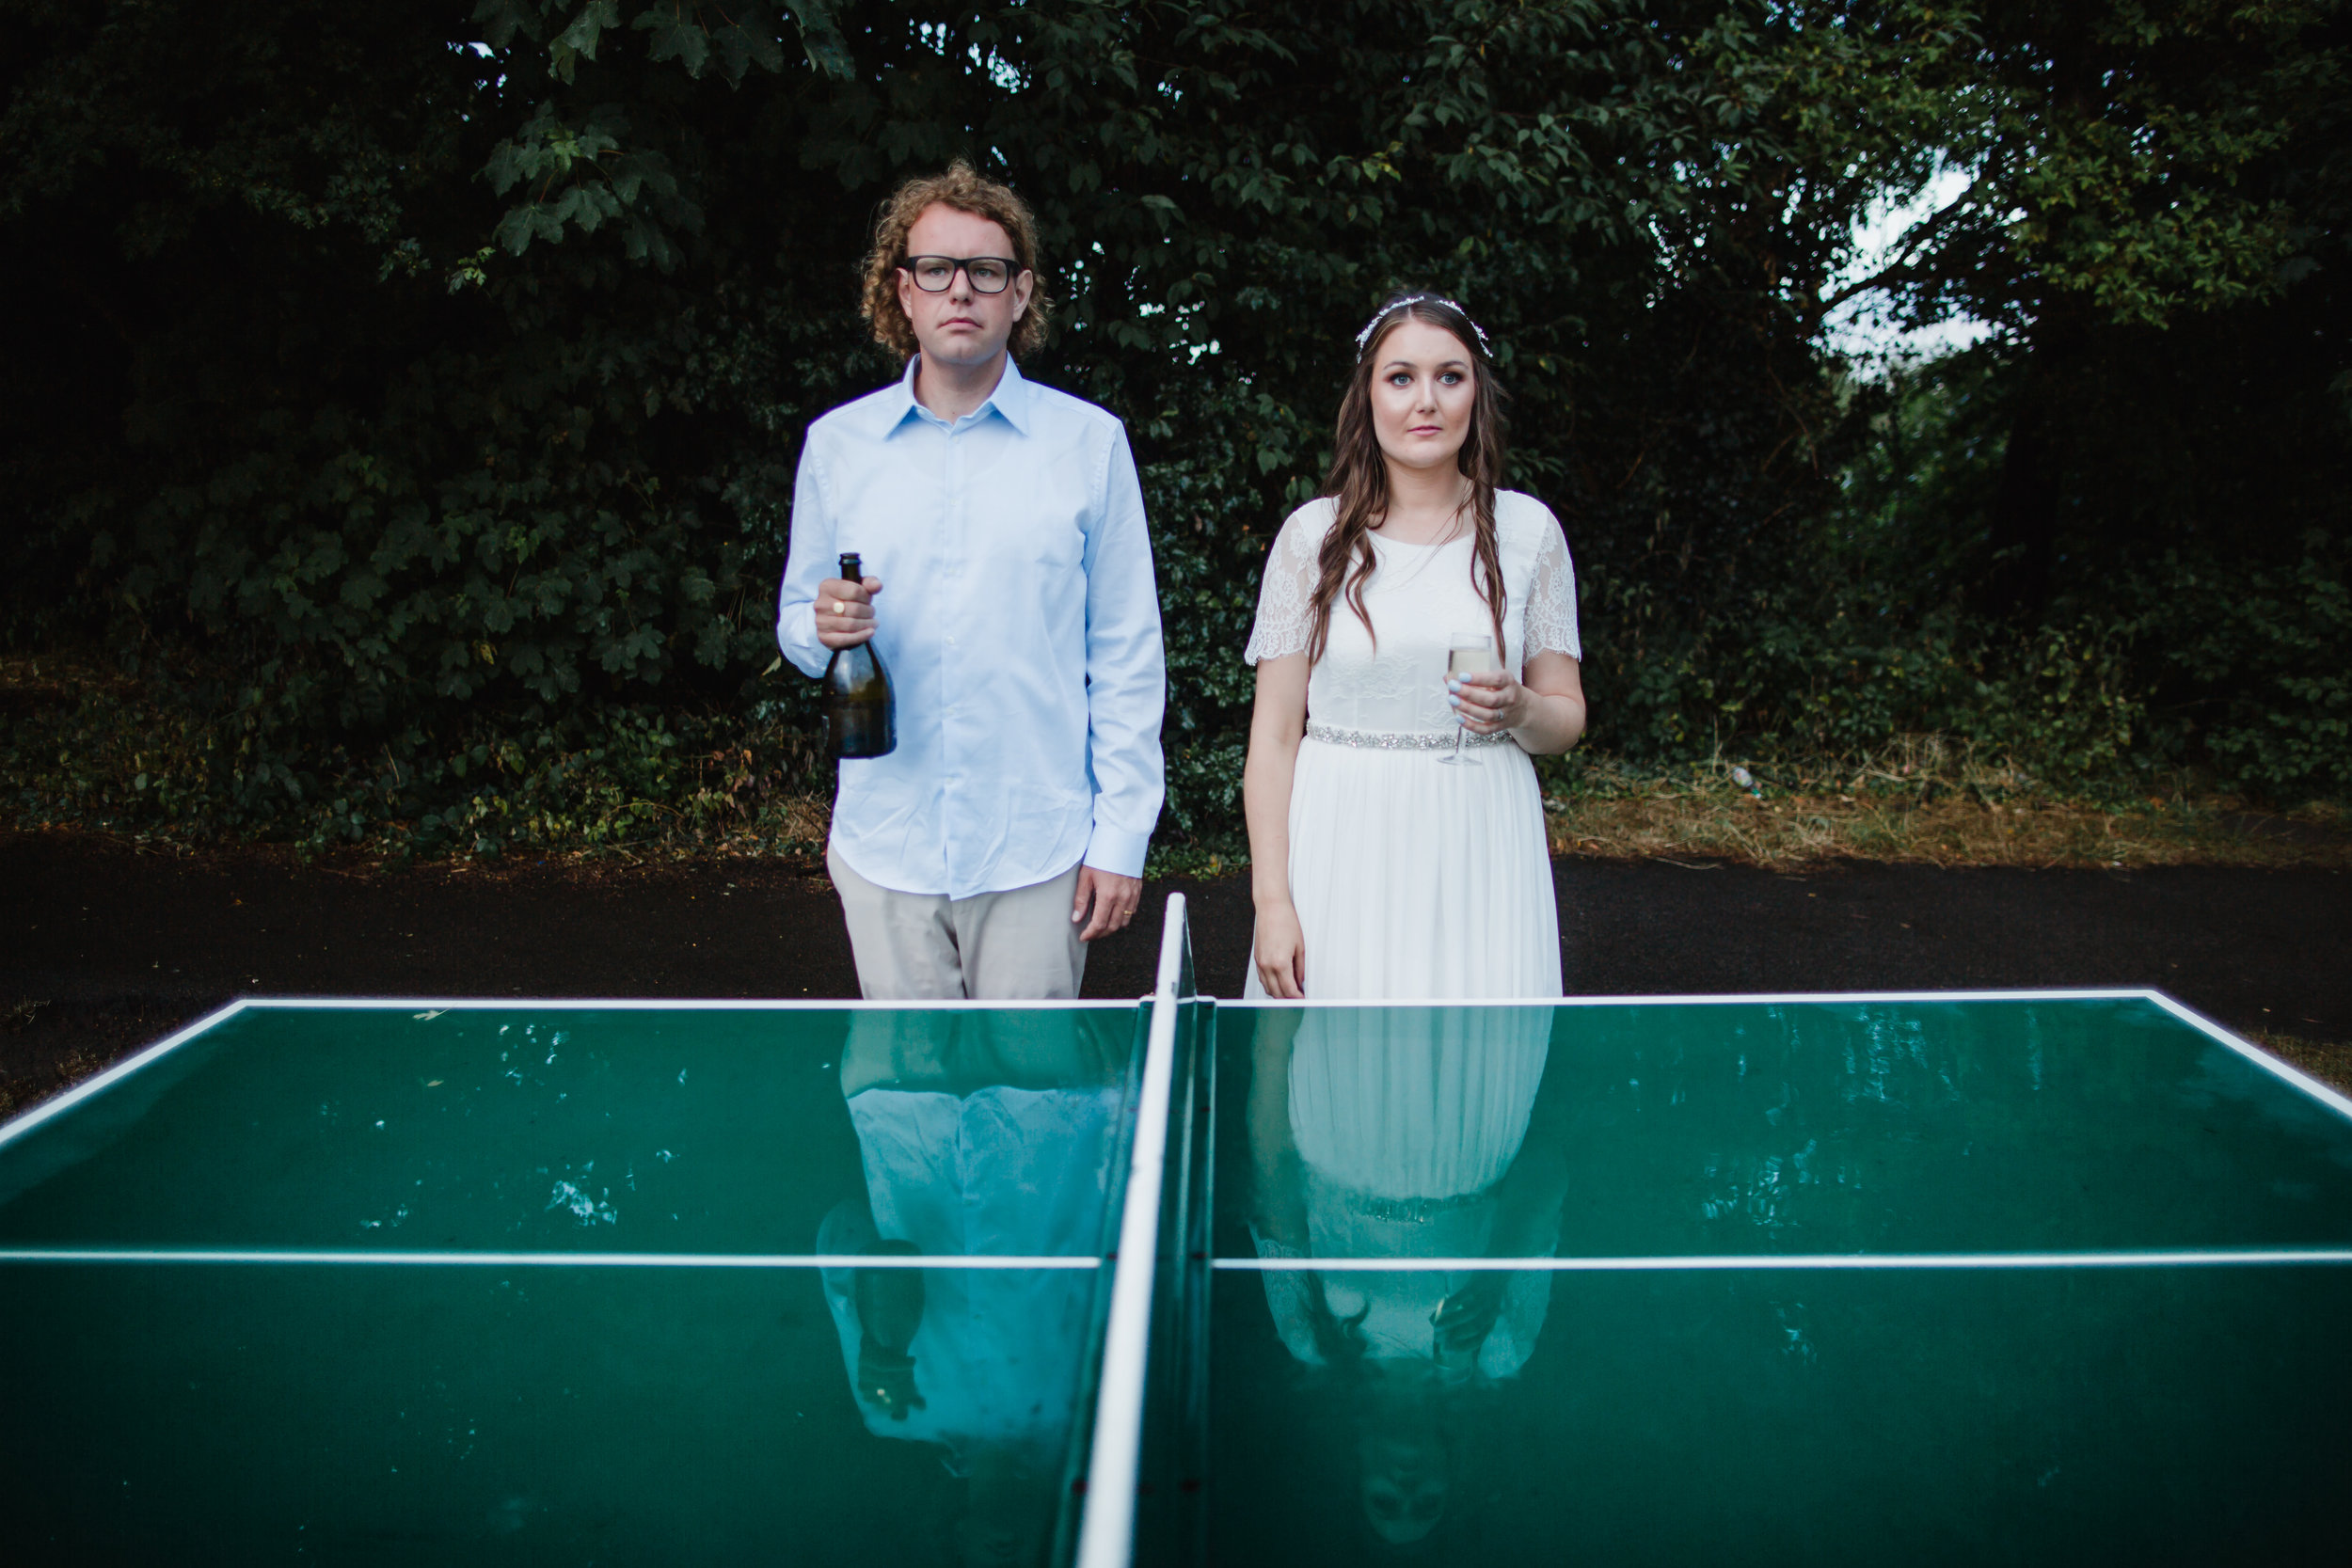 a bride and groom pose in front of a table tennis table